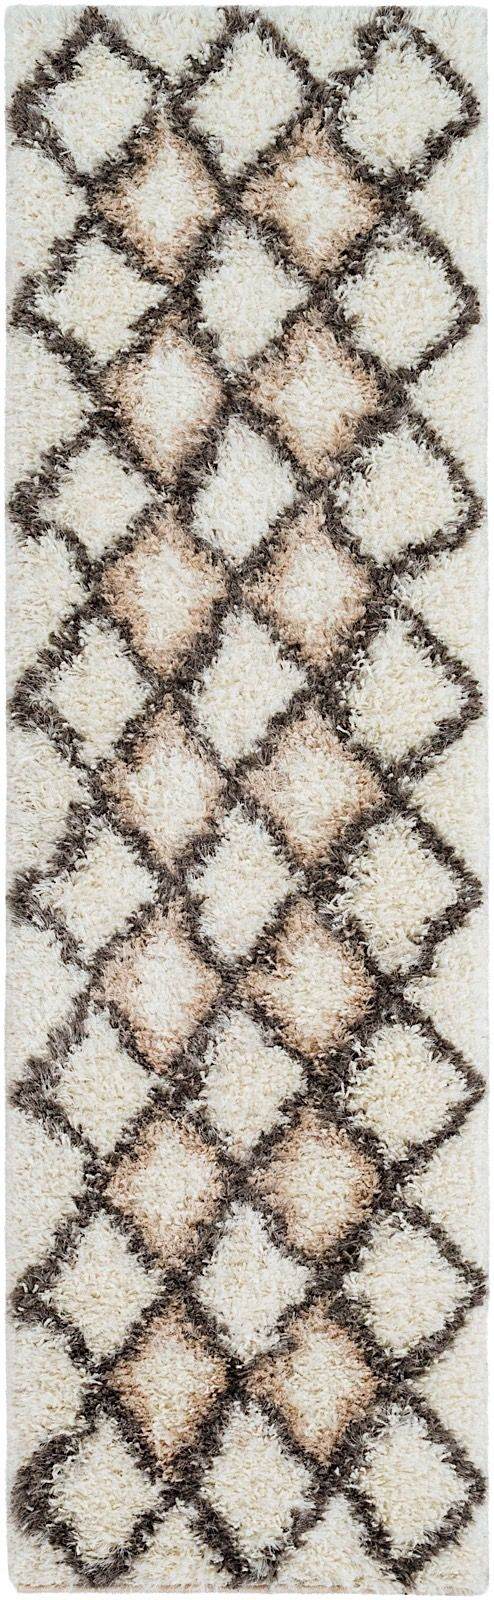 surya mercer shag area rug collection